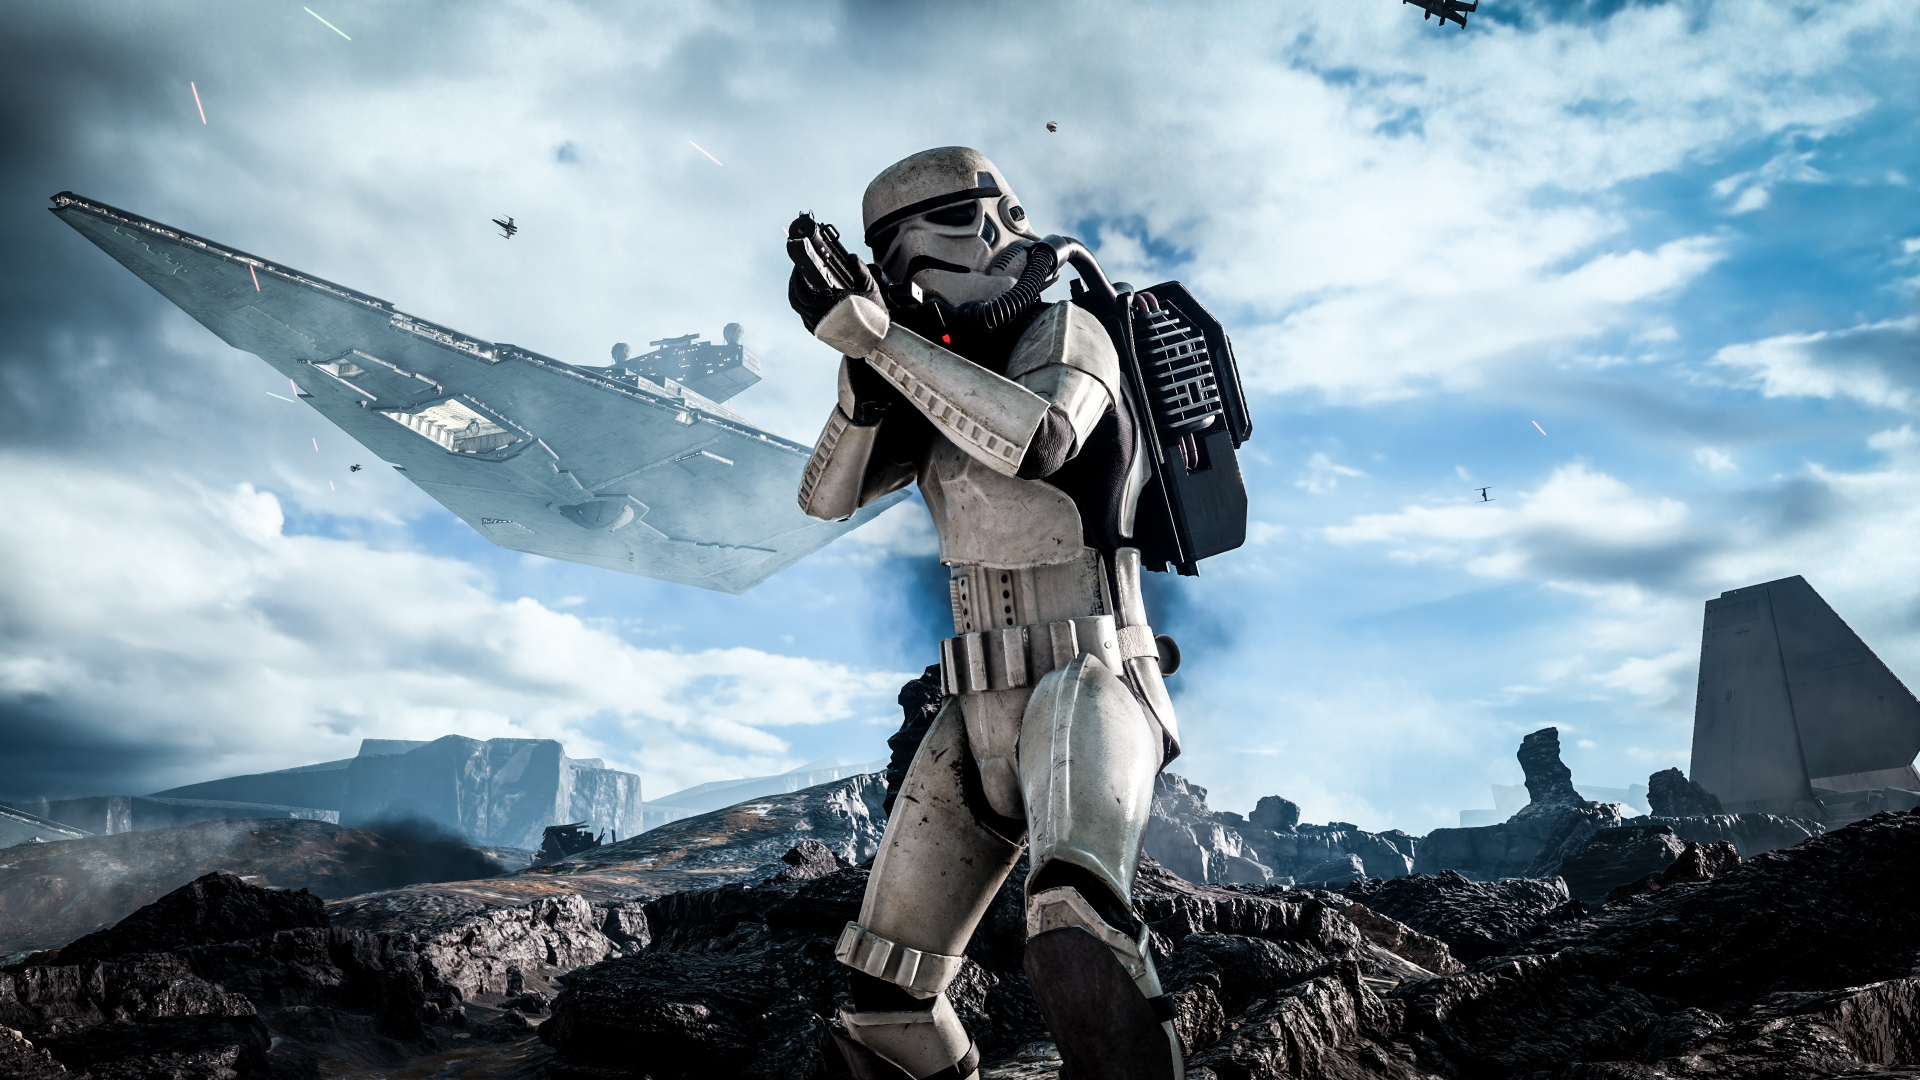 Best Star Wars Wallpapers Page 1